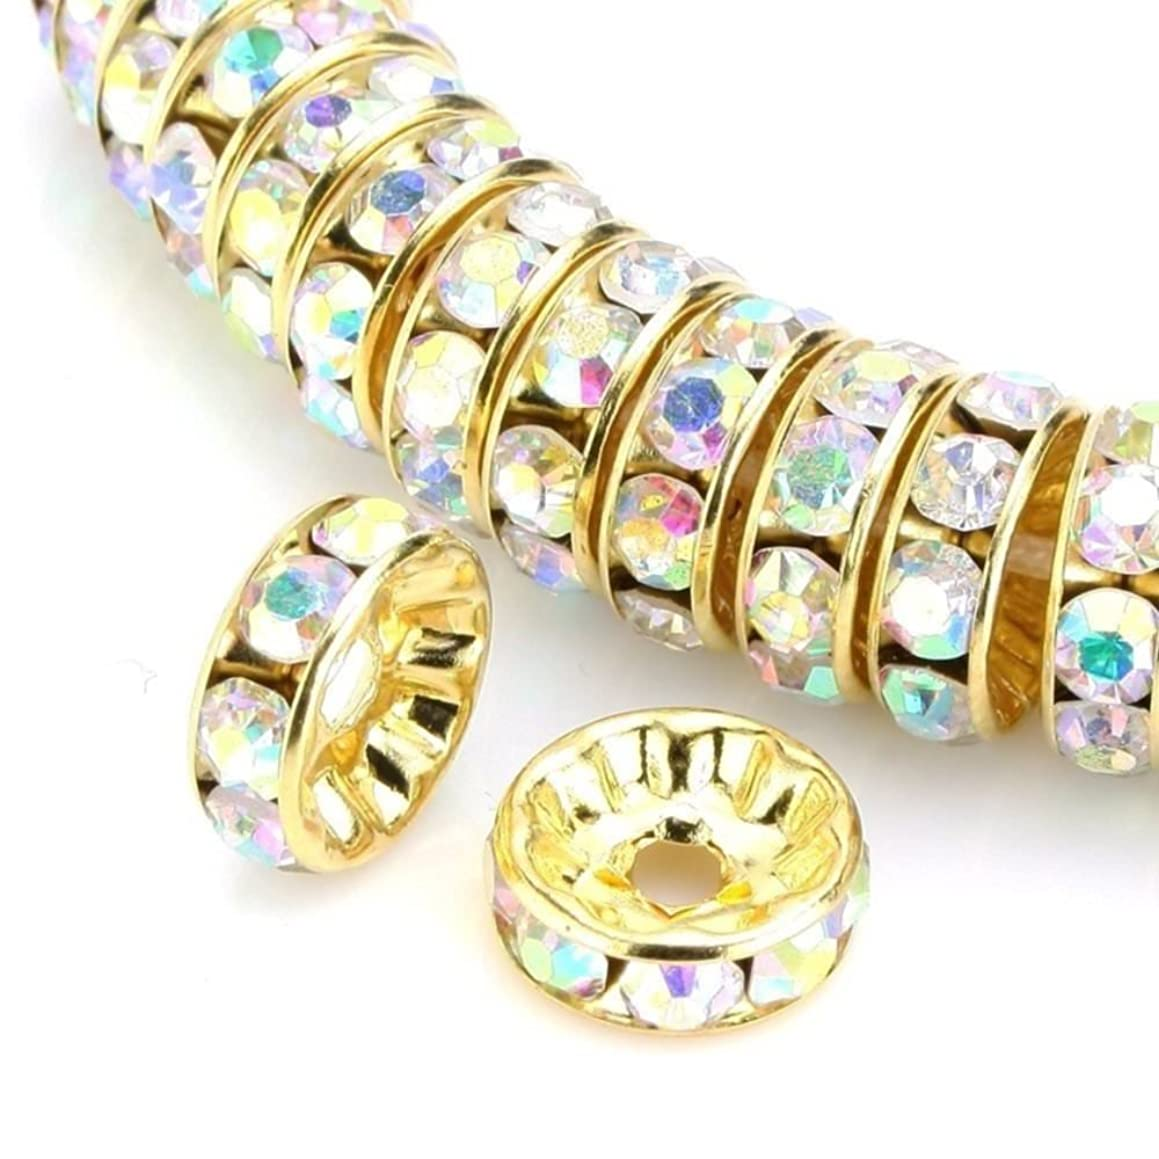 200pcs 6mm Top Quality Rhinestone Rondelle Spacer Beads (Crystal AB) Austrian Crystal 14K Gold Plated Brass Round Metal Beads CF7-602